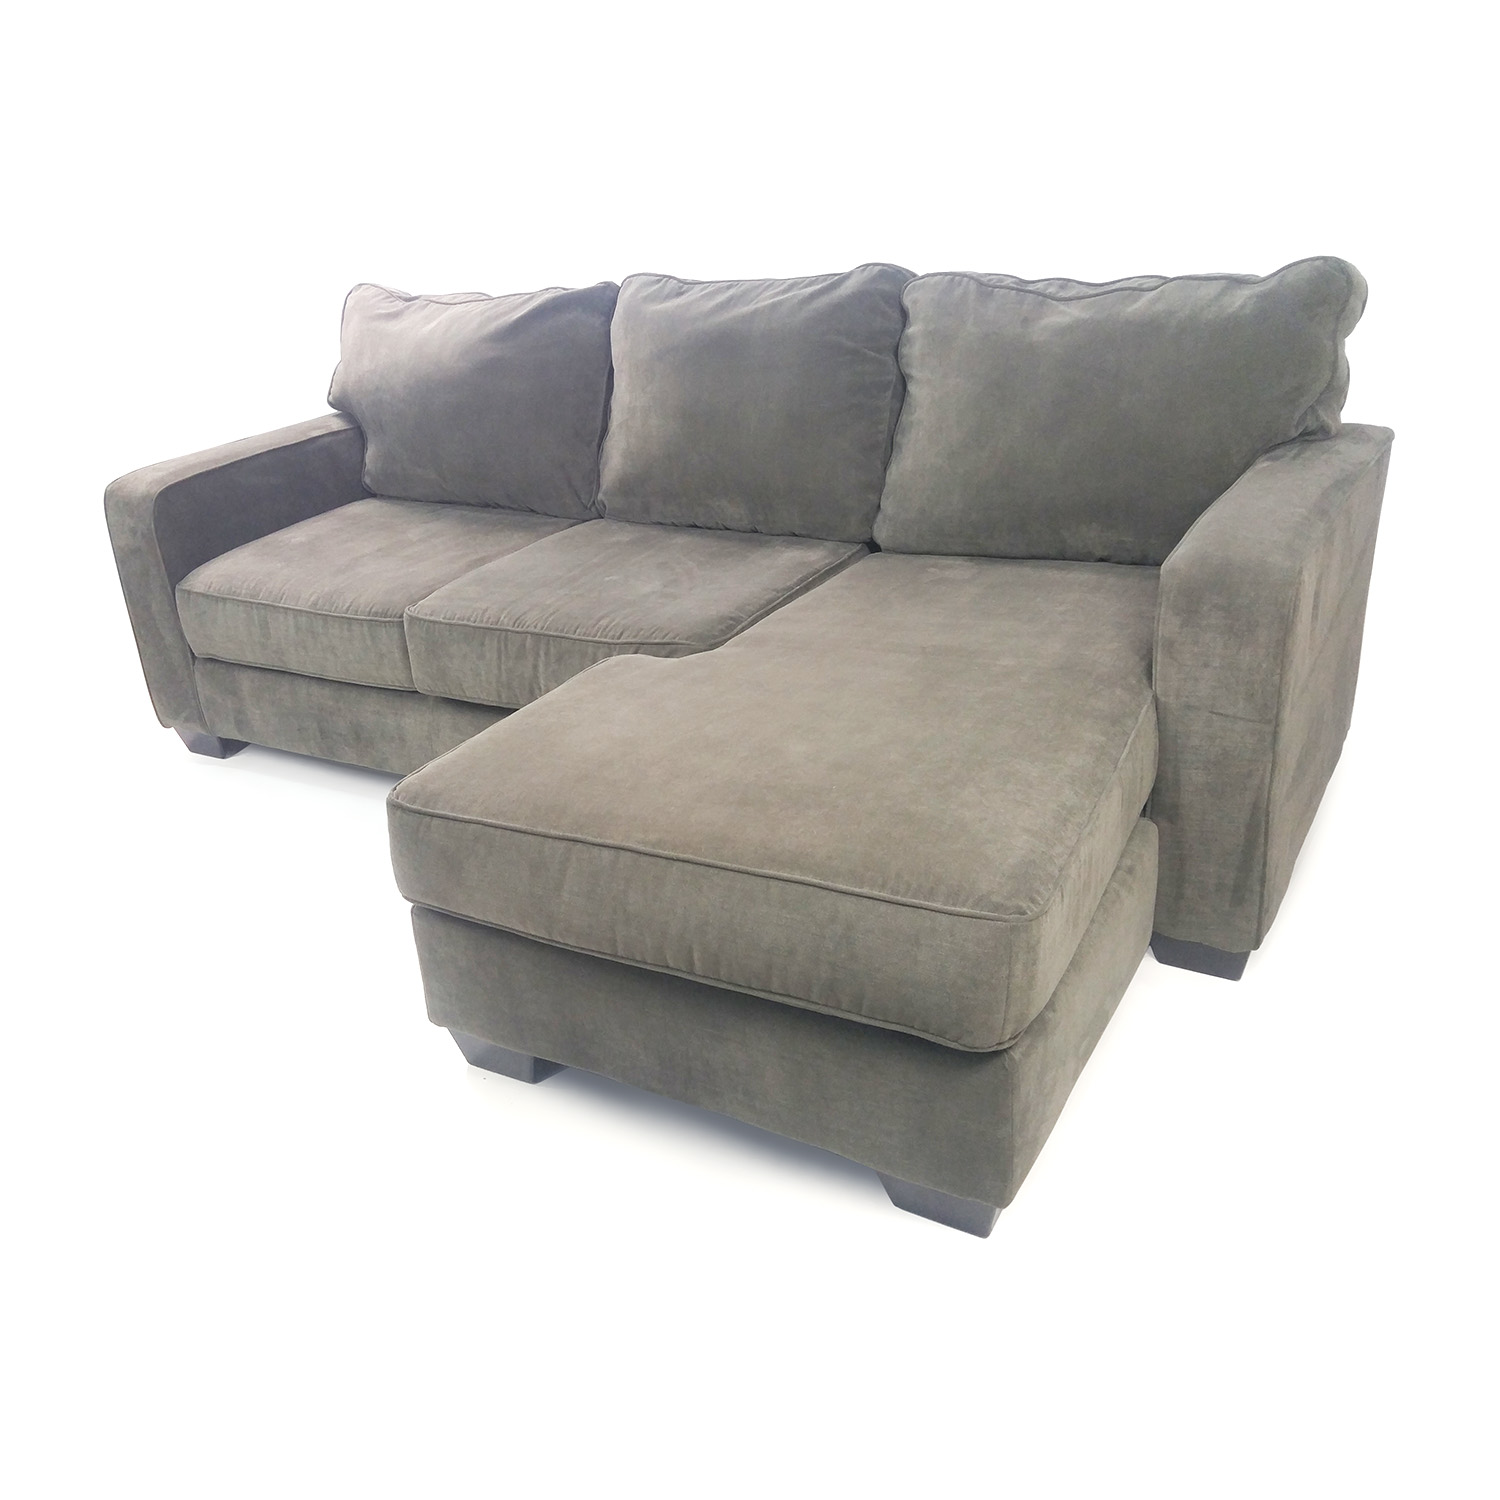 Hodan sofa chaise hodan marble sofa chaise signature for Ashley chaise lounge sofa